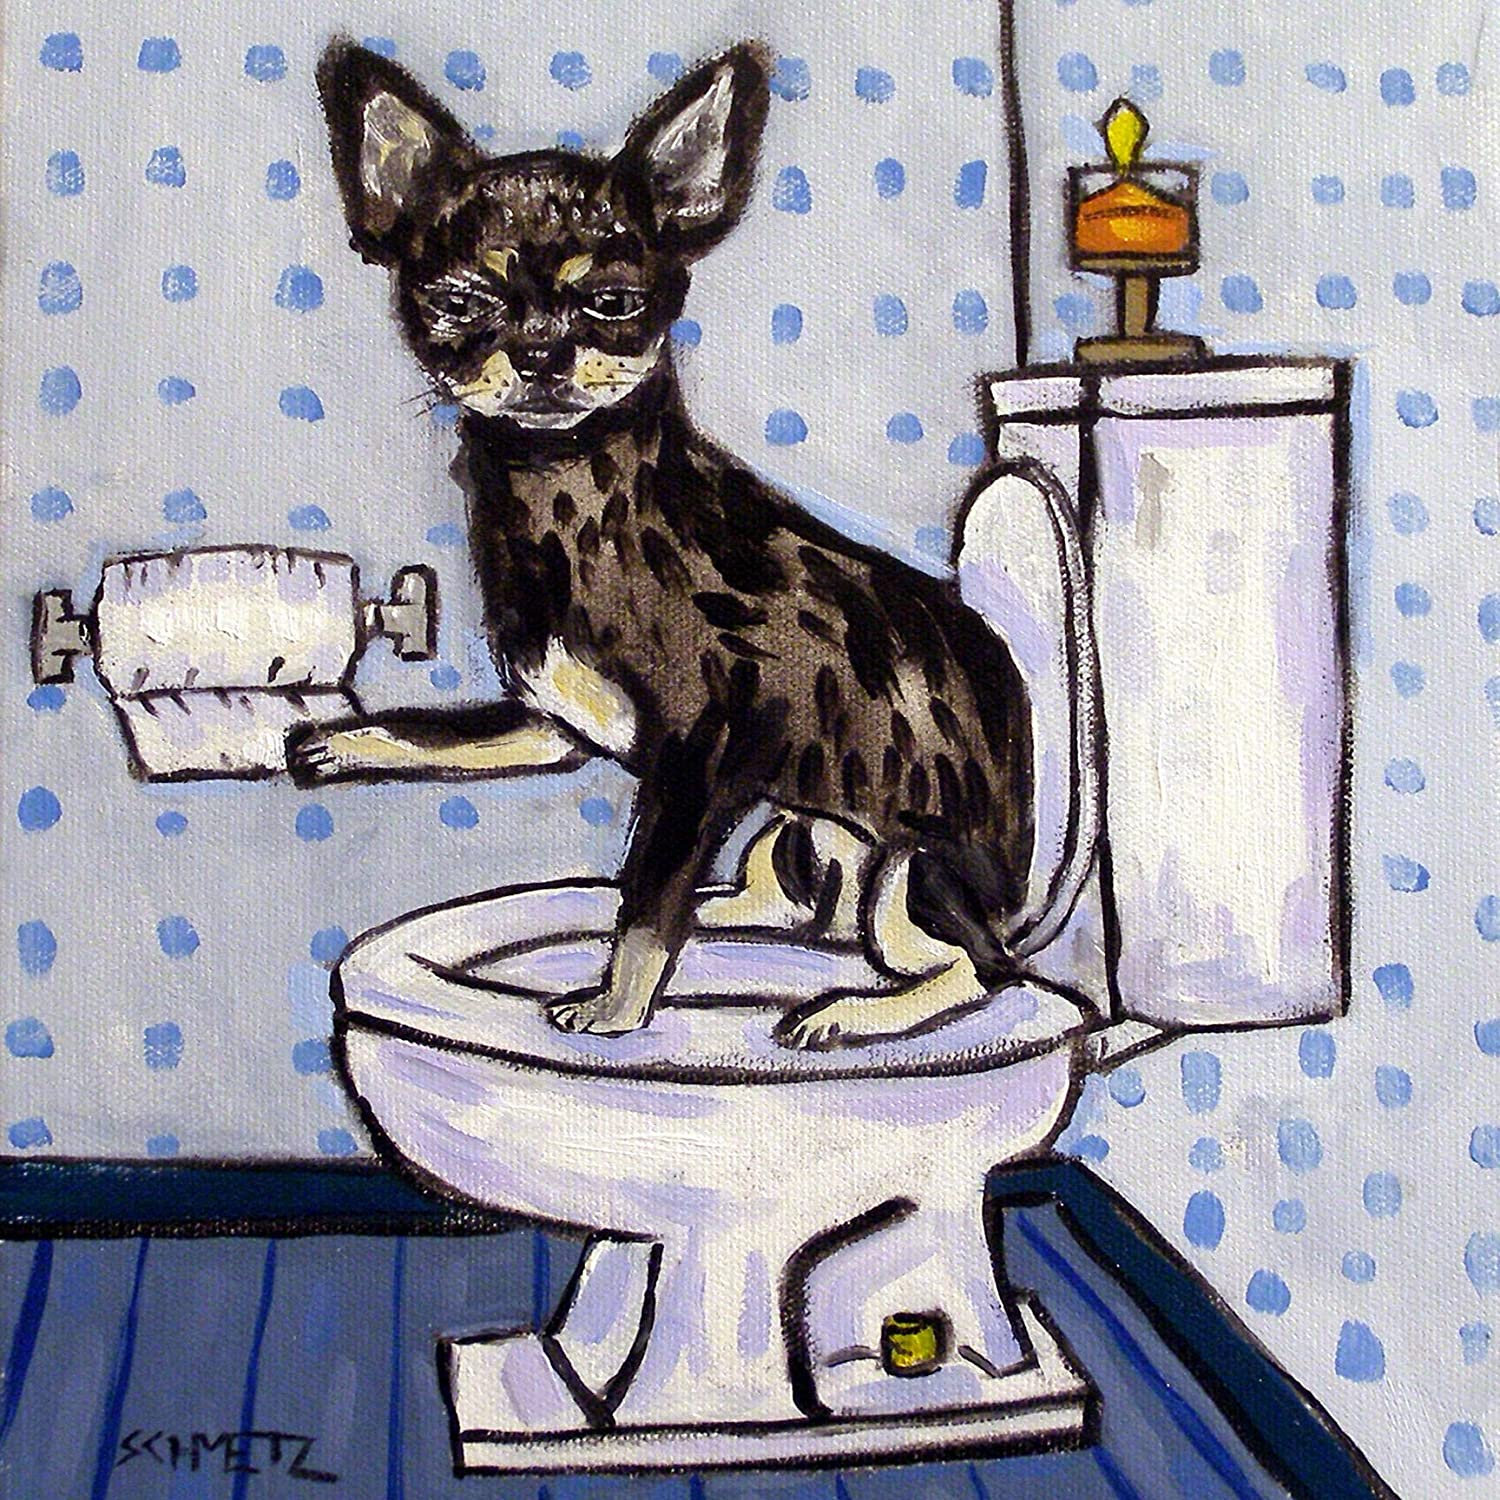 Chihuahua in the bathroom dog art tile coaster gift